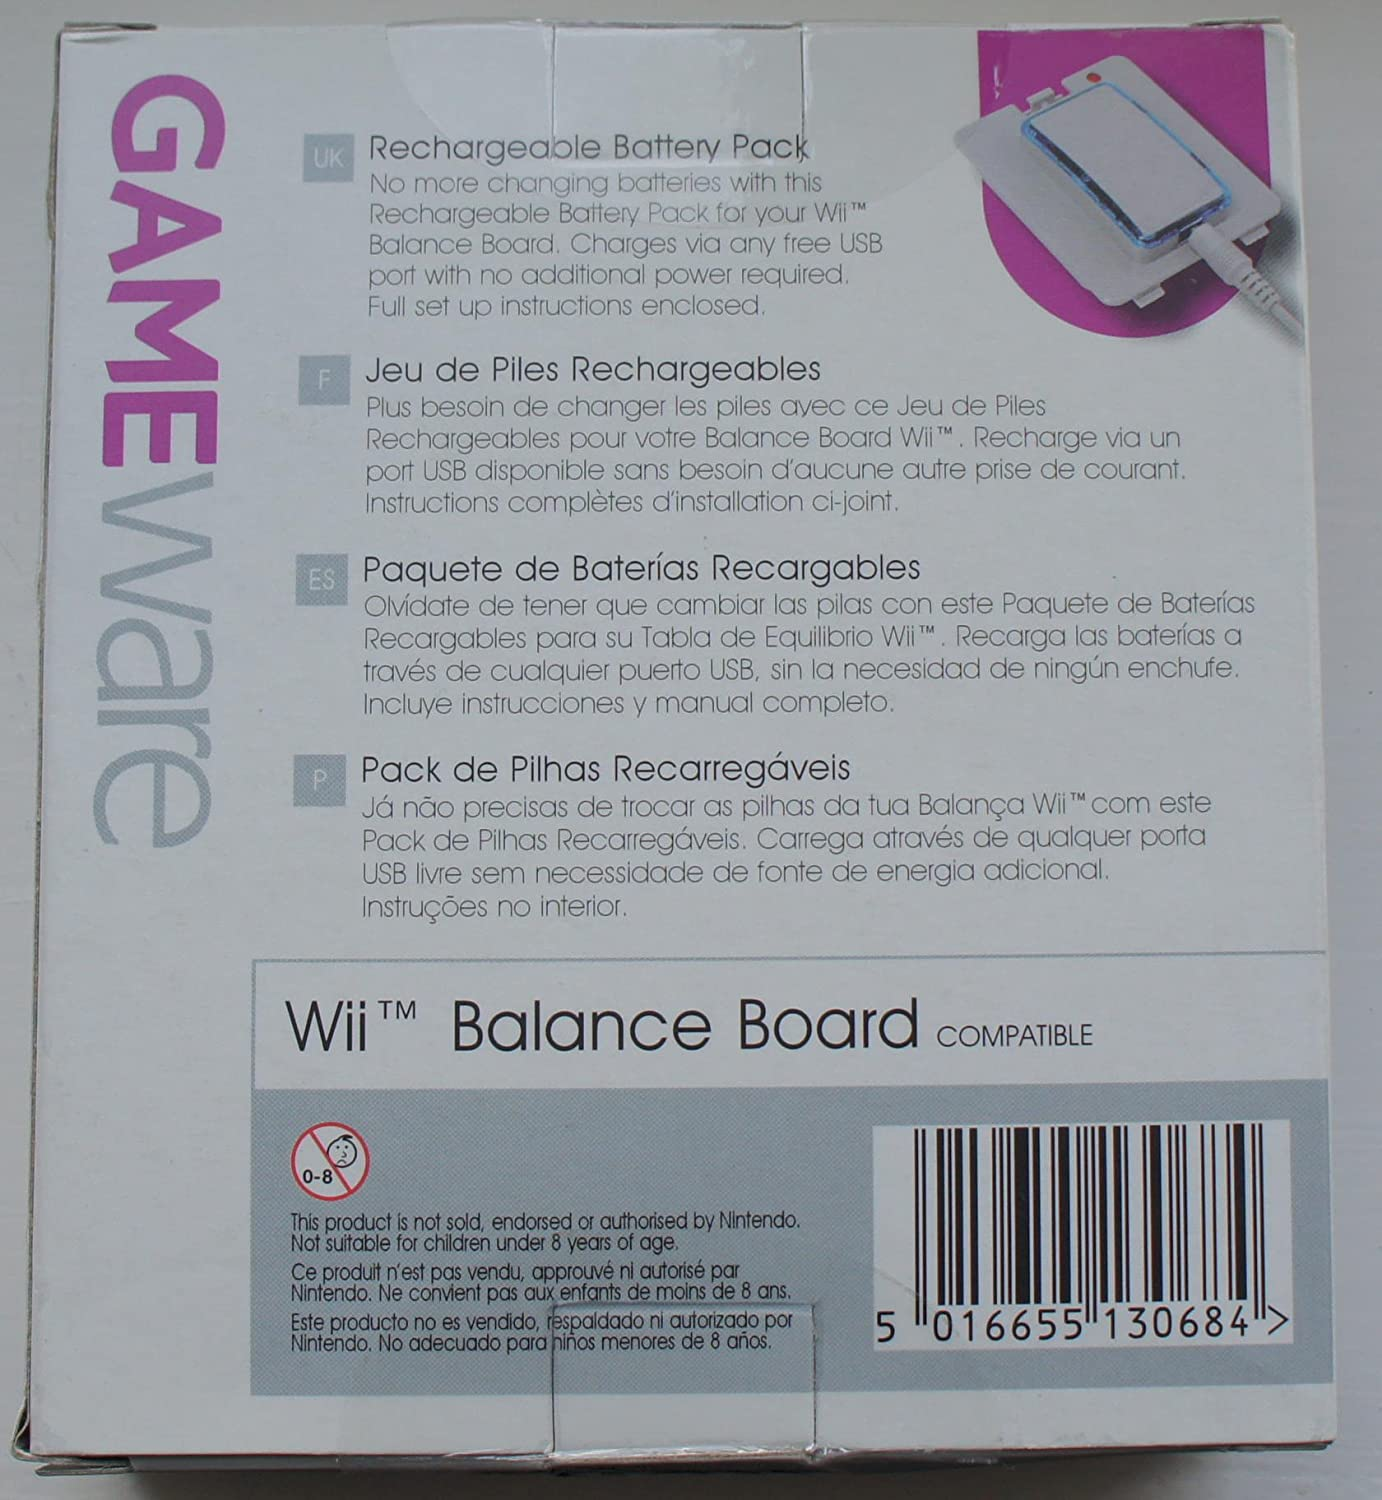 gameware rechargeable battery pack wii balance board compatible rh amazon co uk Wii Remote Instruction Guide Copy Wii Instruction Manual